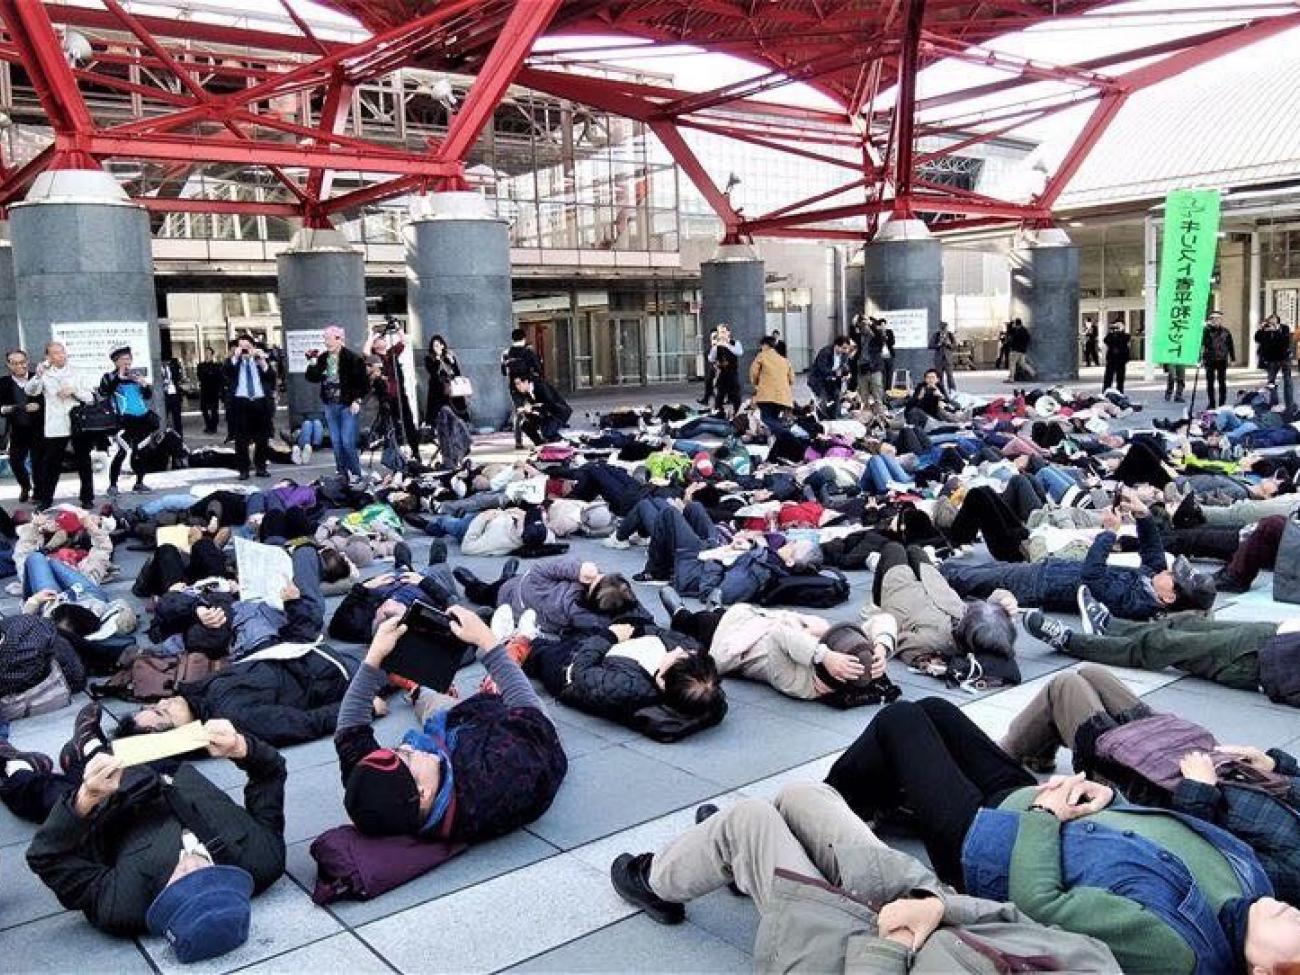 Activists stage a die-in outside the Japan DSEI arms fair, Chiba